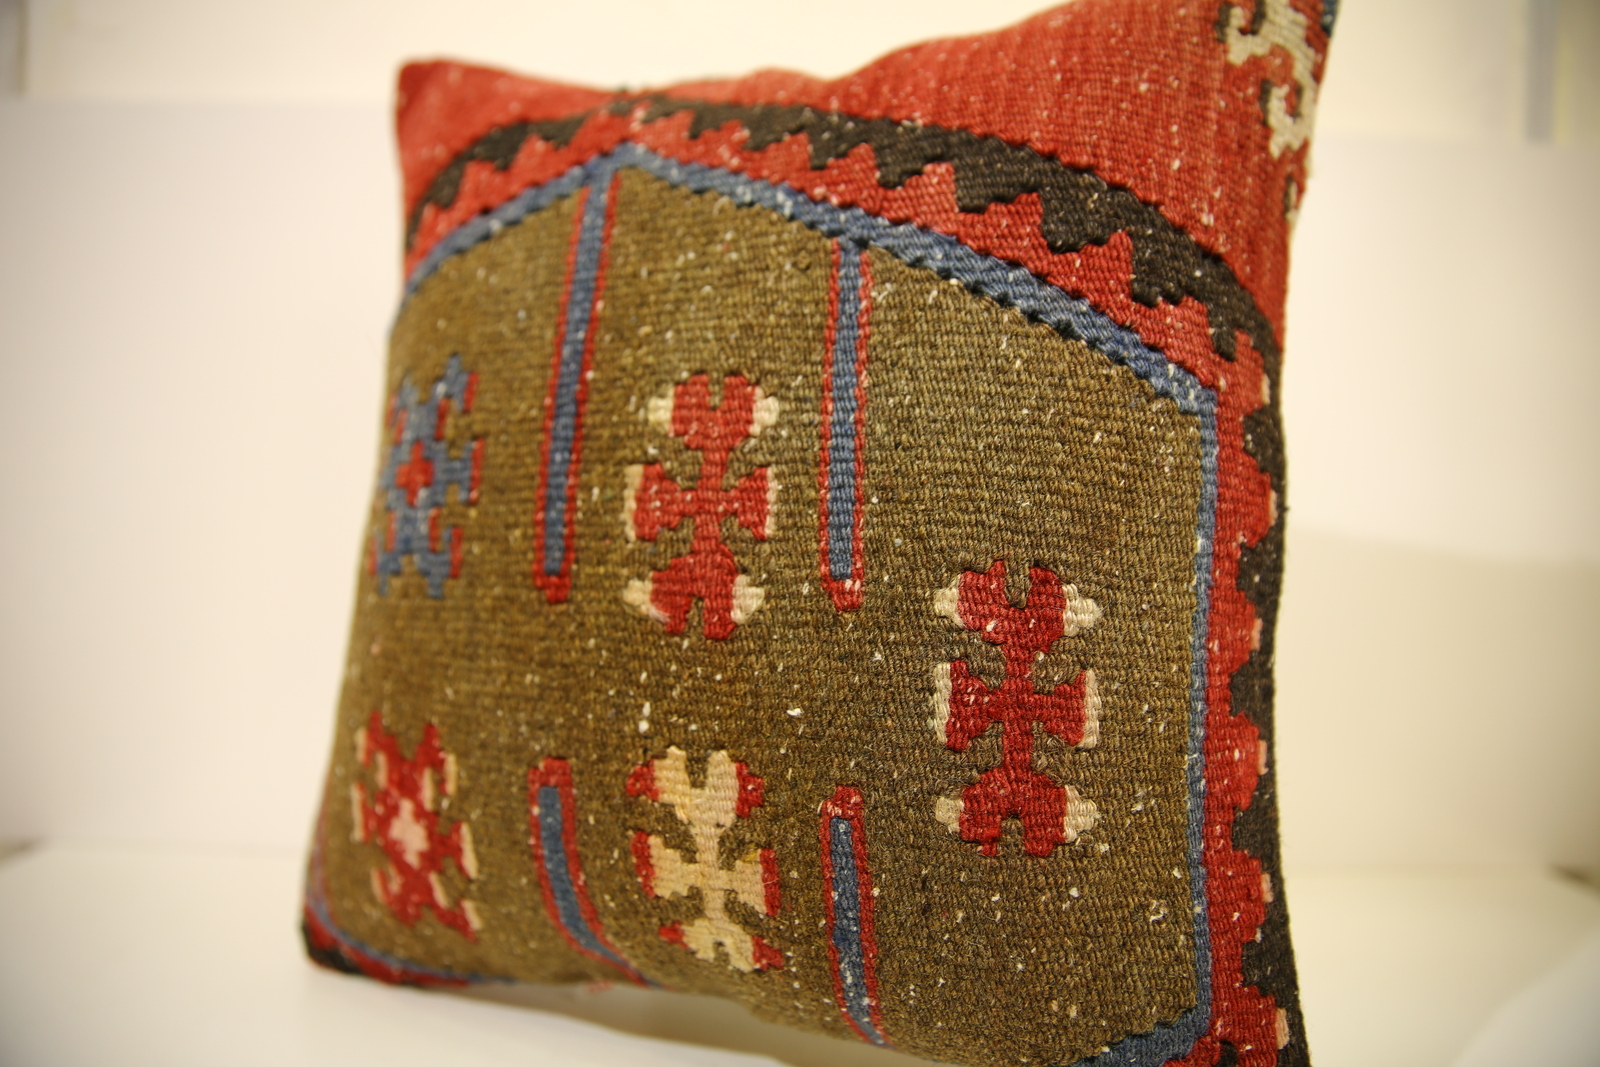 Kilim Pillows |16x16 | Decorative Pillows | 1568 | Accent Pillows turkish pillow